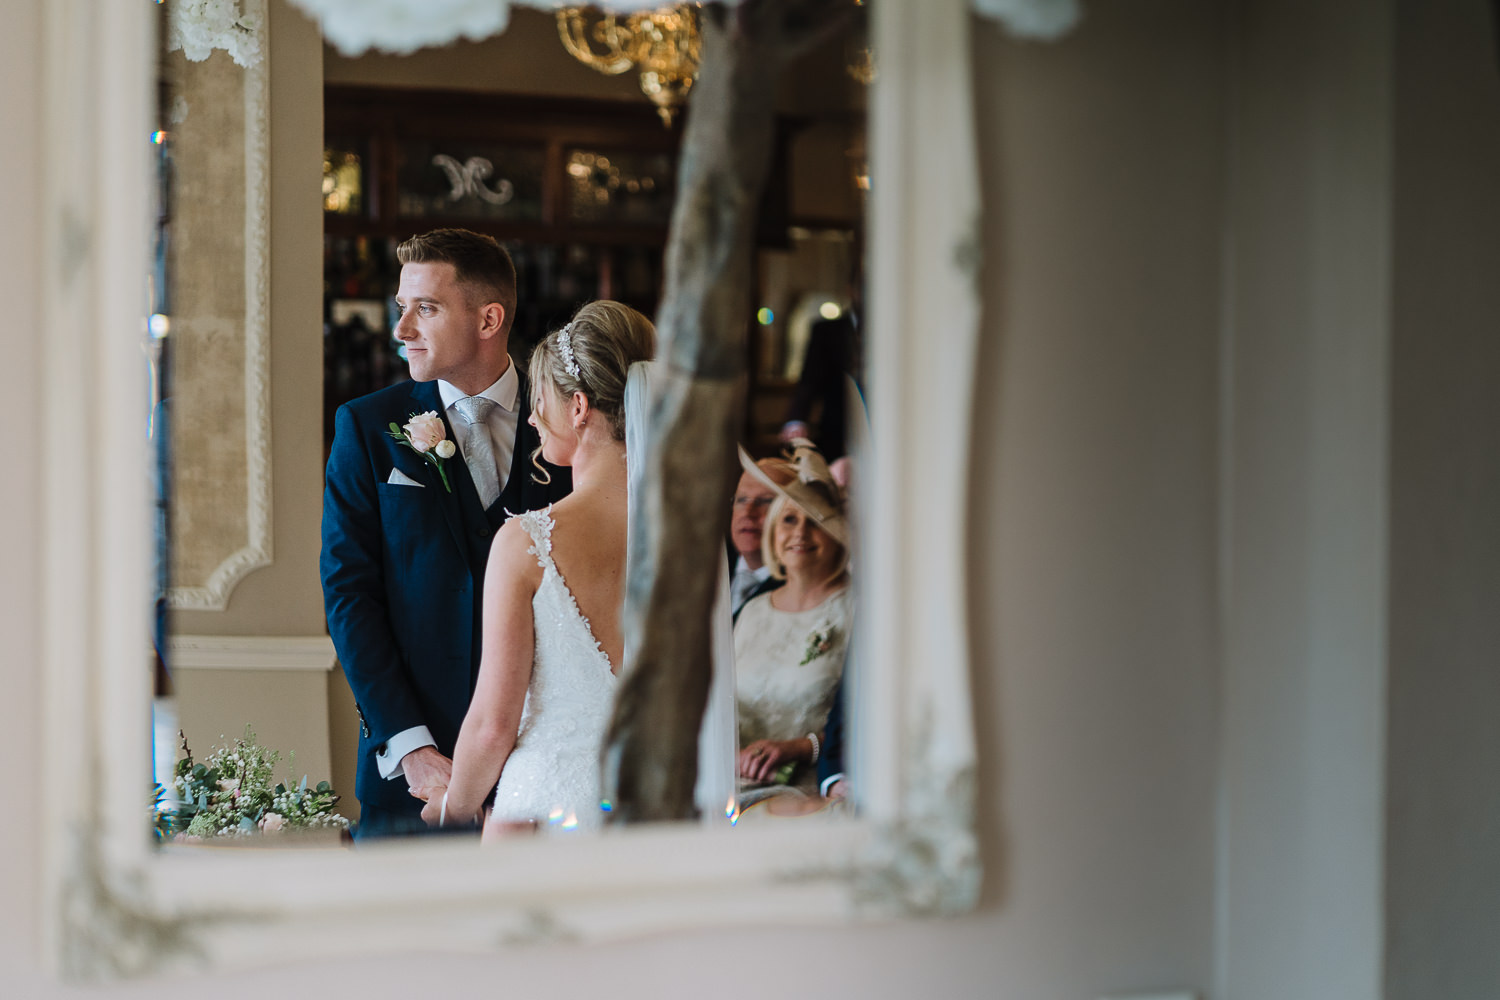 Photo of the bride and groom in the mirror